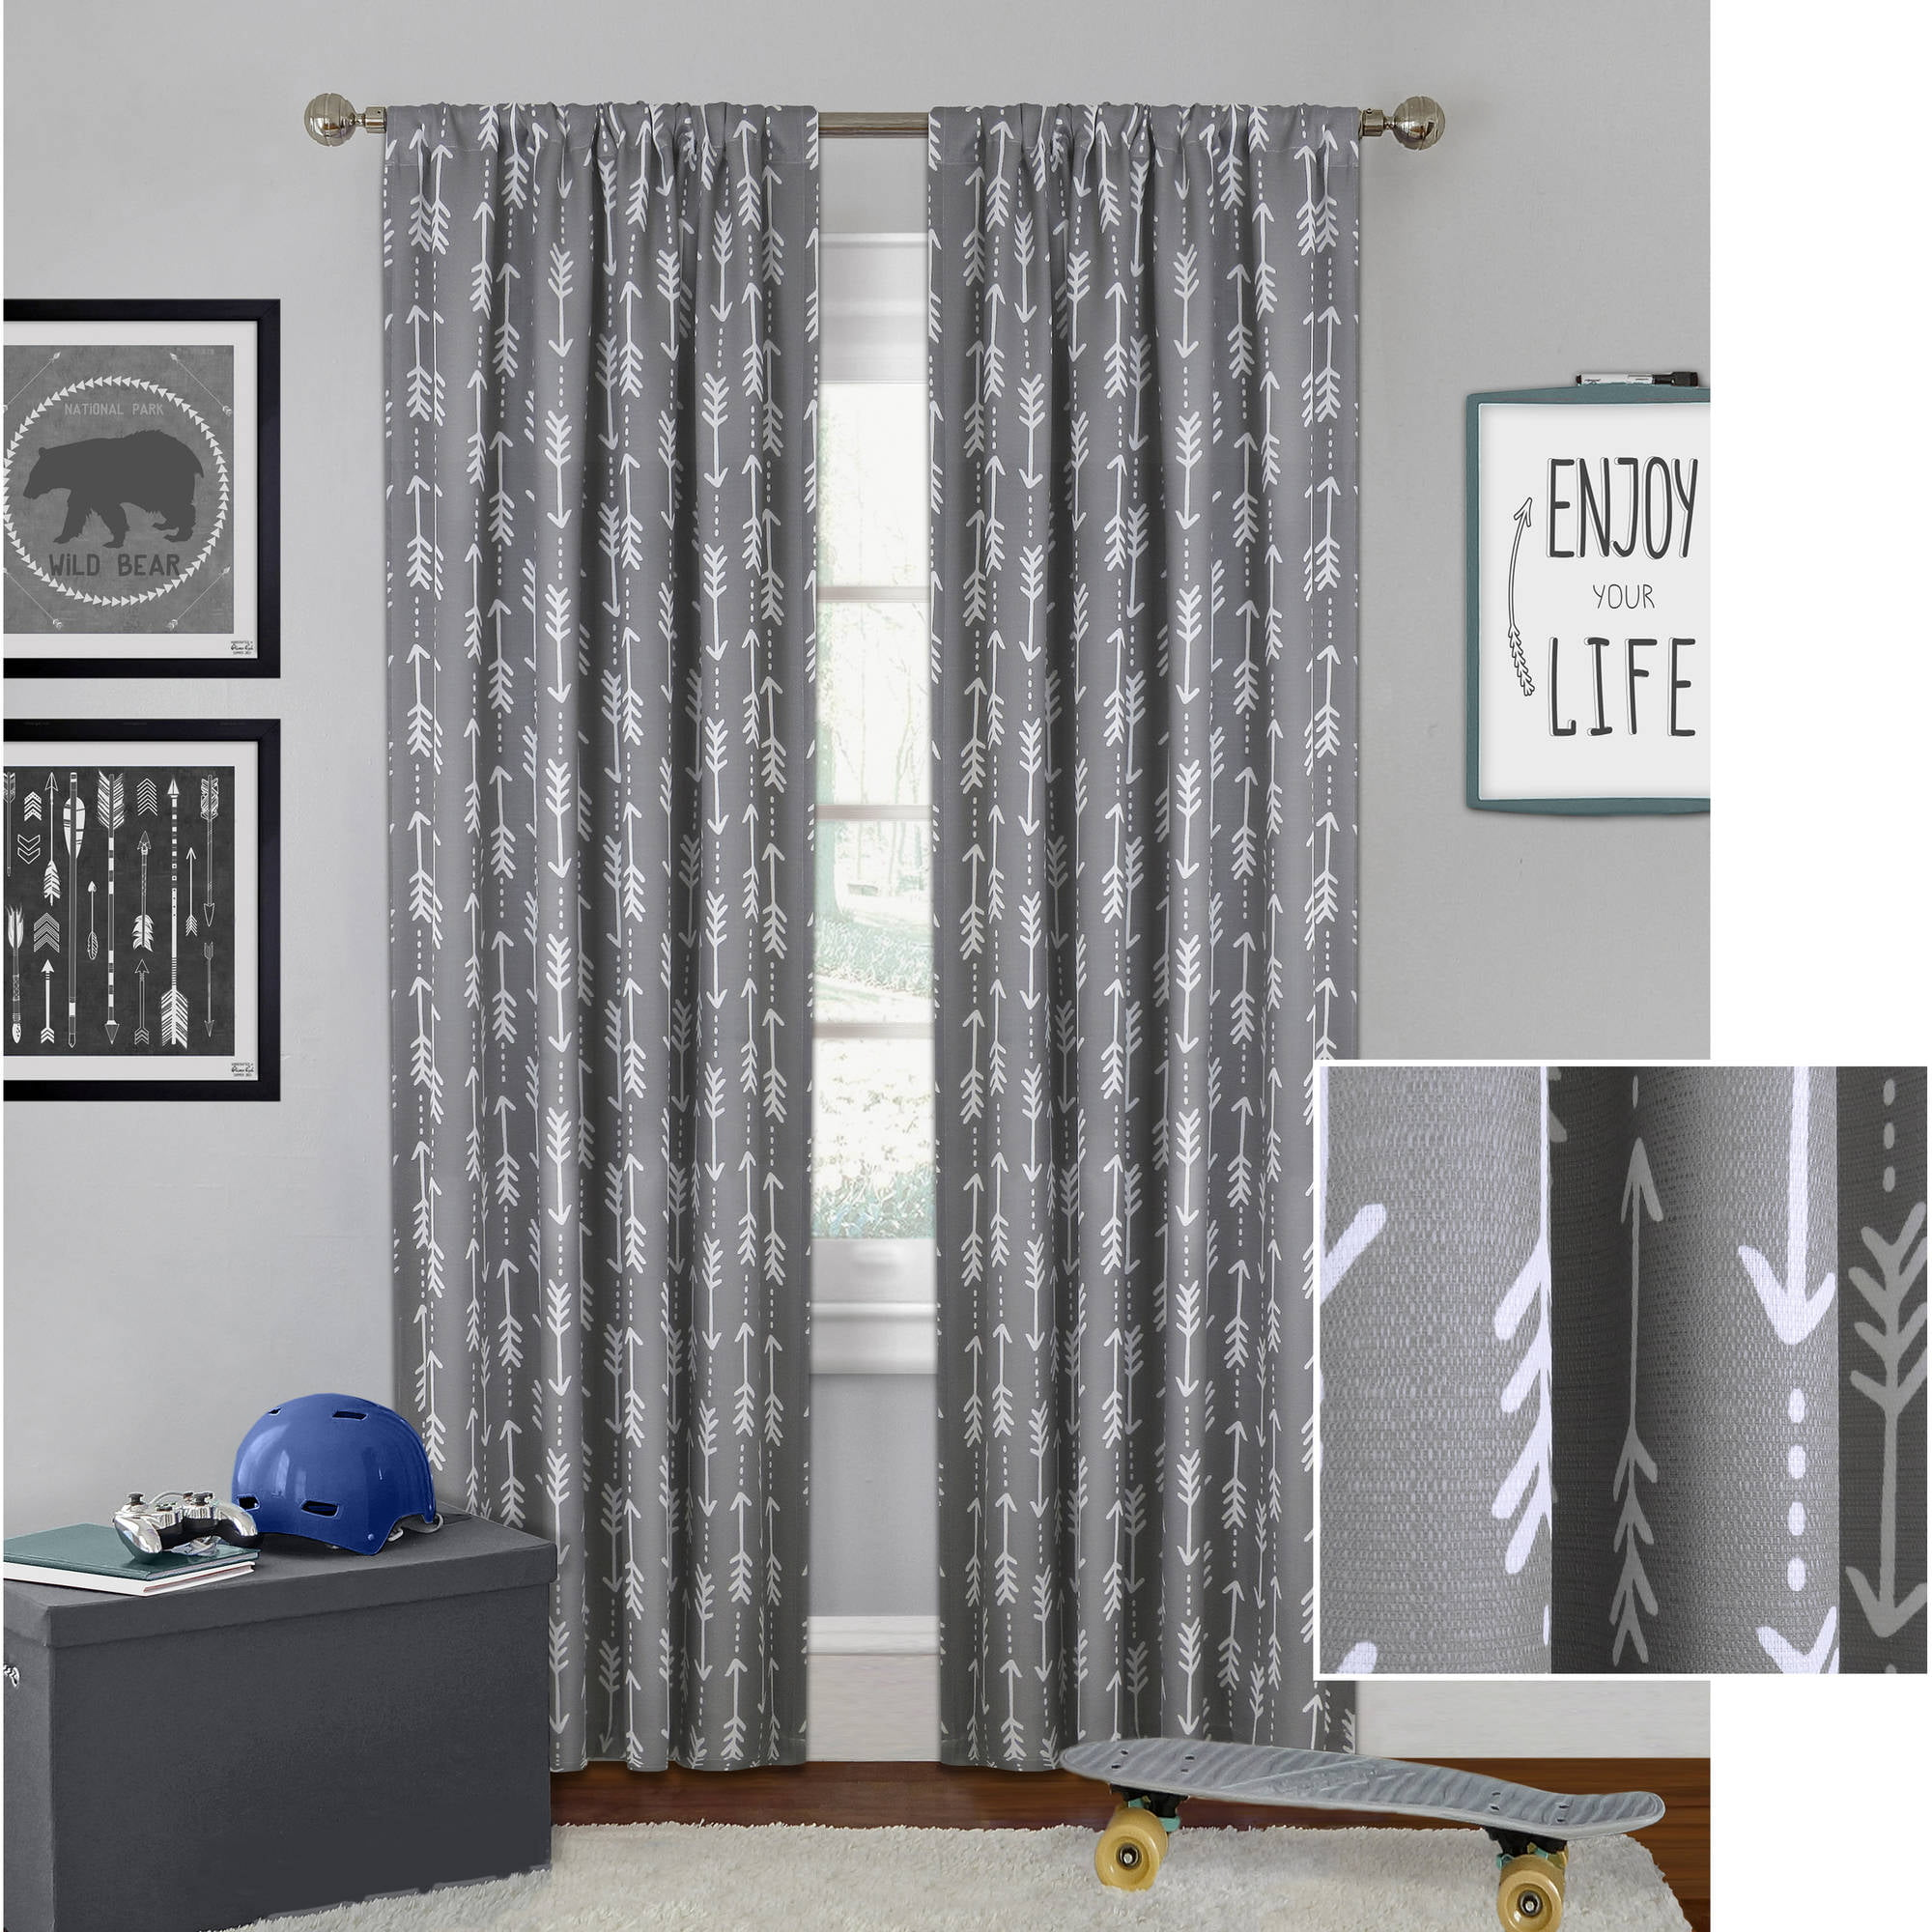 Better Homes And Gardens Arrows Curtain Panel   Walmart.com